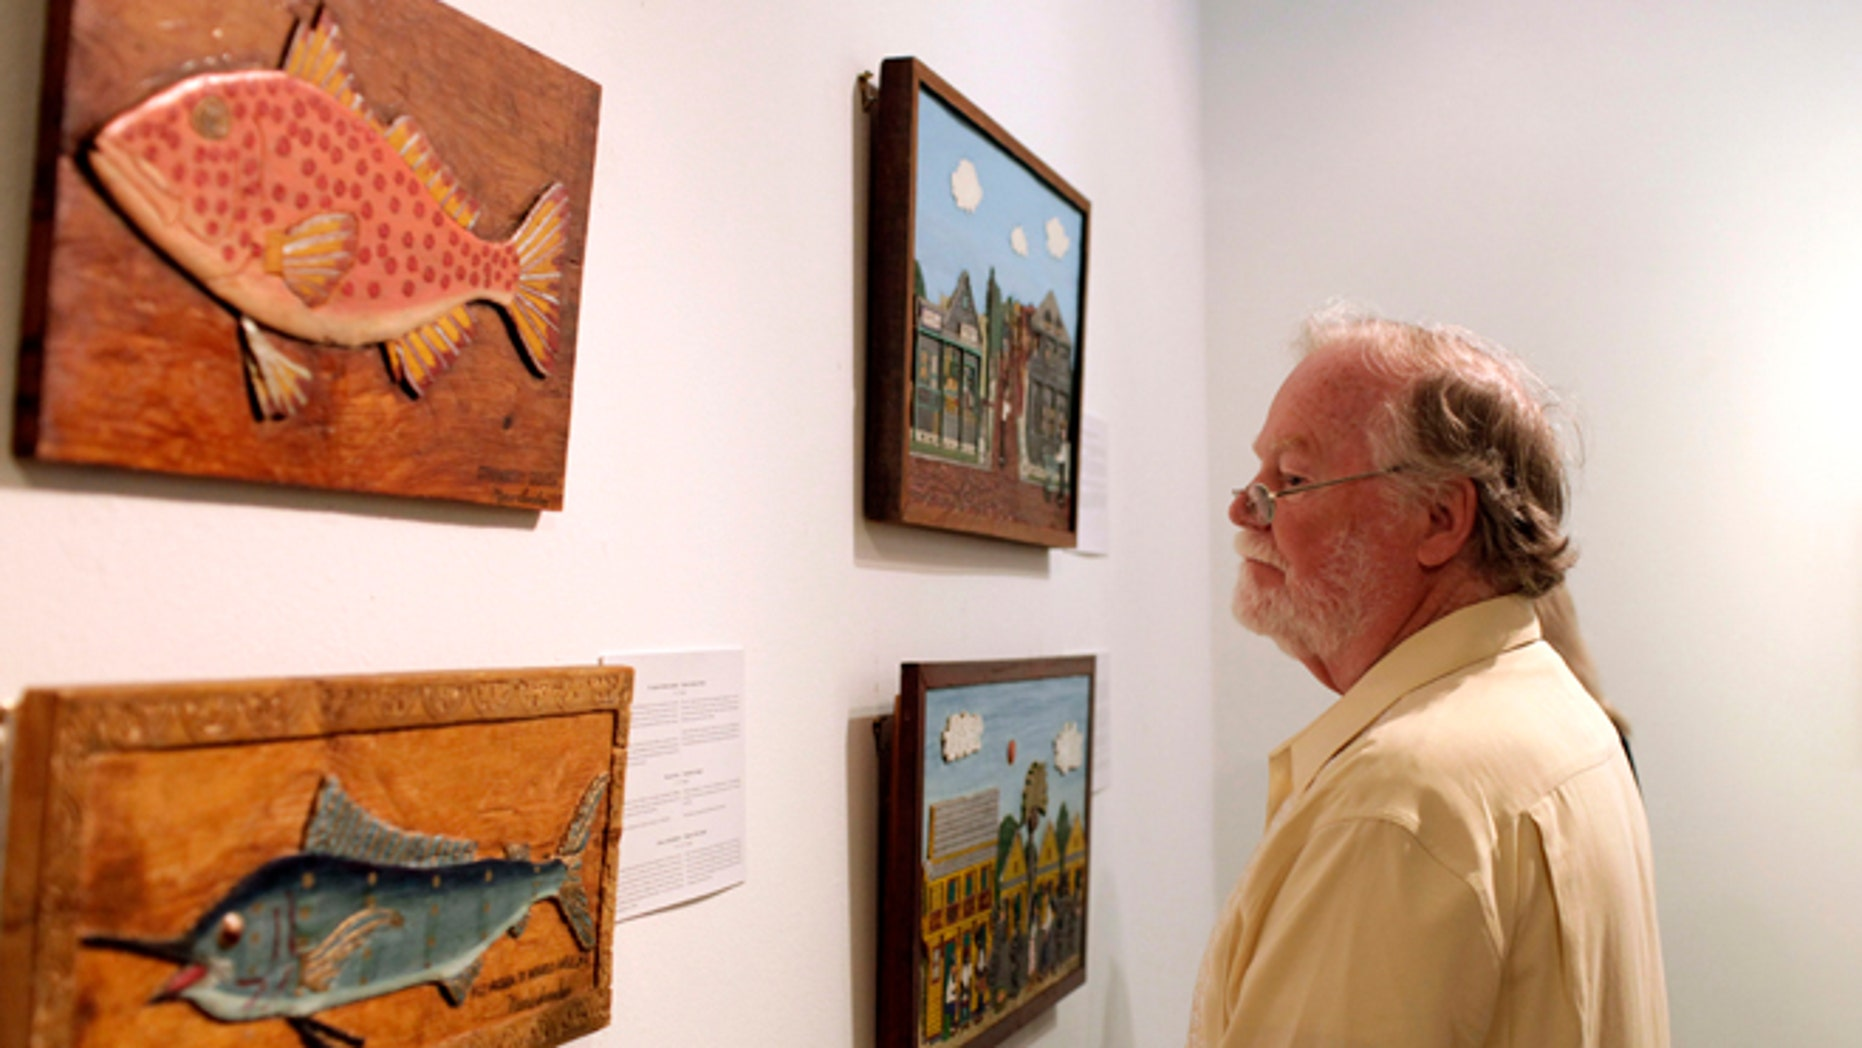 """A man looks at art by Mario Sanchez, a deceased Florida artist of Cuban descent, inside the Bellas Artes museum in Havana, Cuba, late Friday, Jan. 17, 2014. The show, titled """"Una Raza"""" or """"One Race,"""" is part of an exchange between Havana and Key West under which several prominent Cuban artists will exhibit on the Florida island next month. (AP Photo/Franklin Reyes)"""